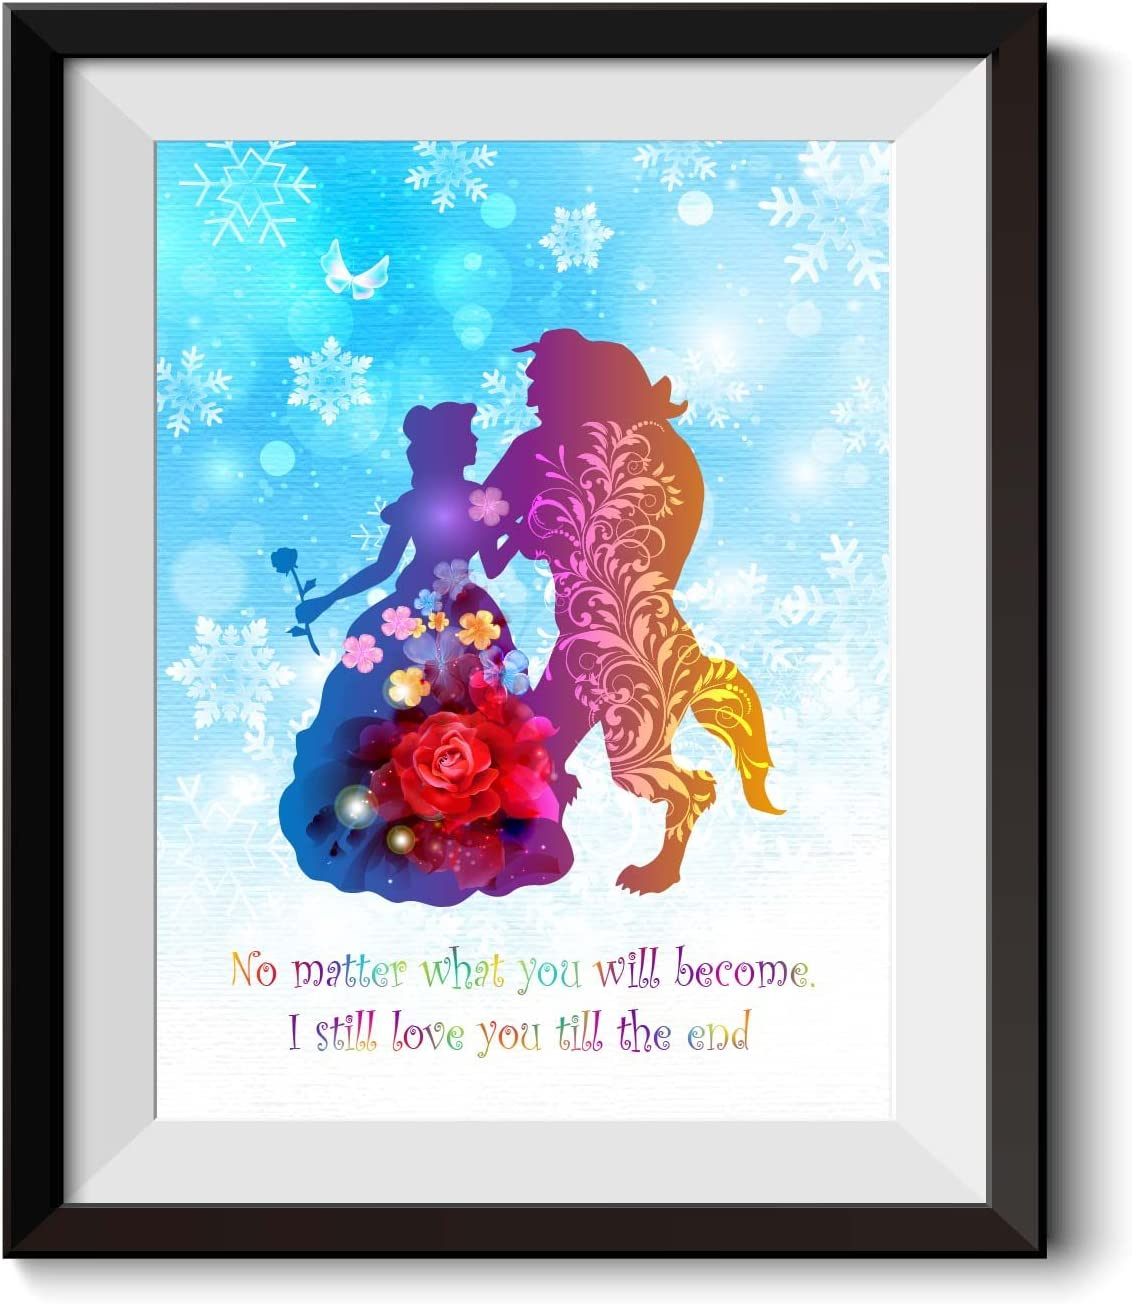 Uhomate Princess Belle Beauty and The Beast Beauty Beast Home Canvas Prints Wall Art Baby Gift Inspirational Quotes Wall Decor Living Room Bedroom Bathroom Artwork C019 (8X10 inch)